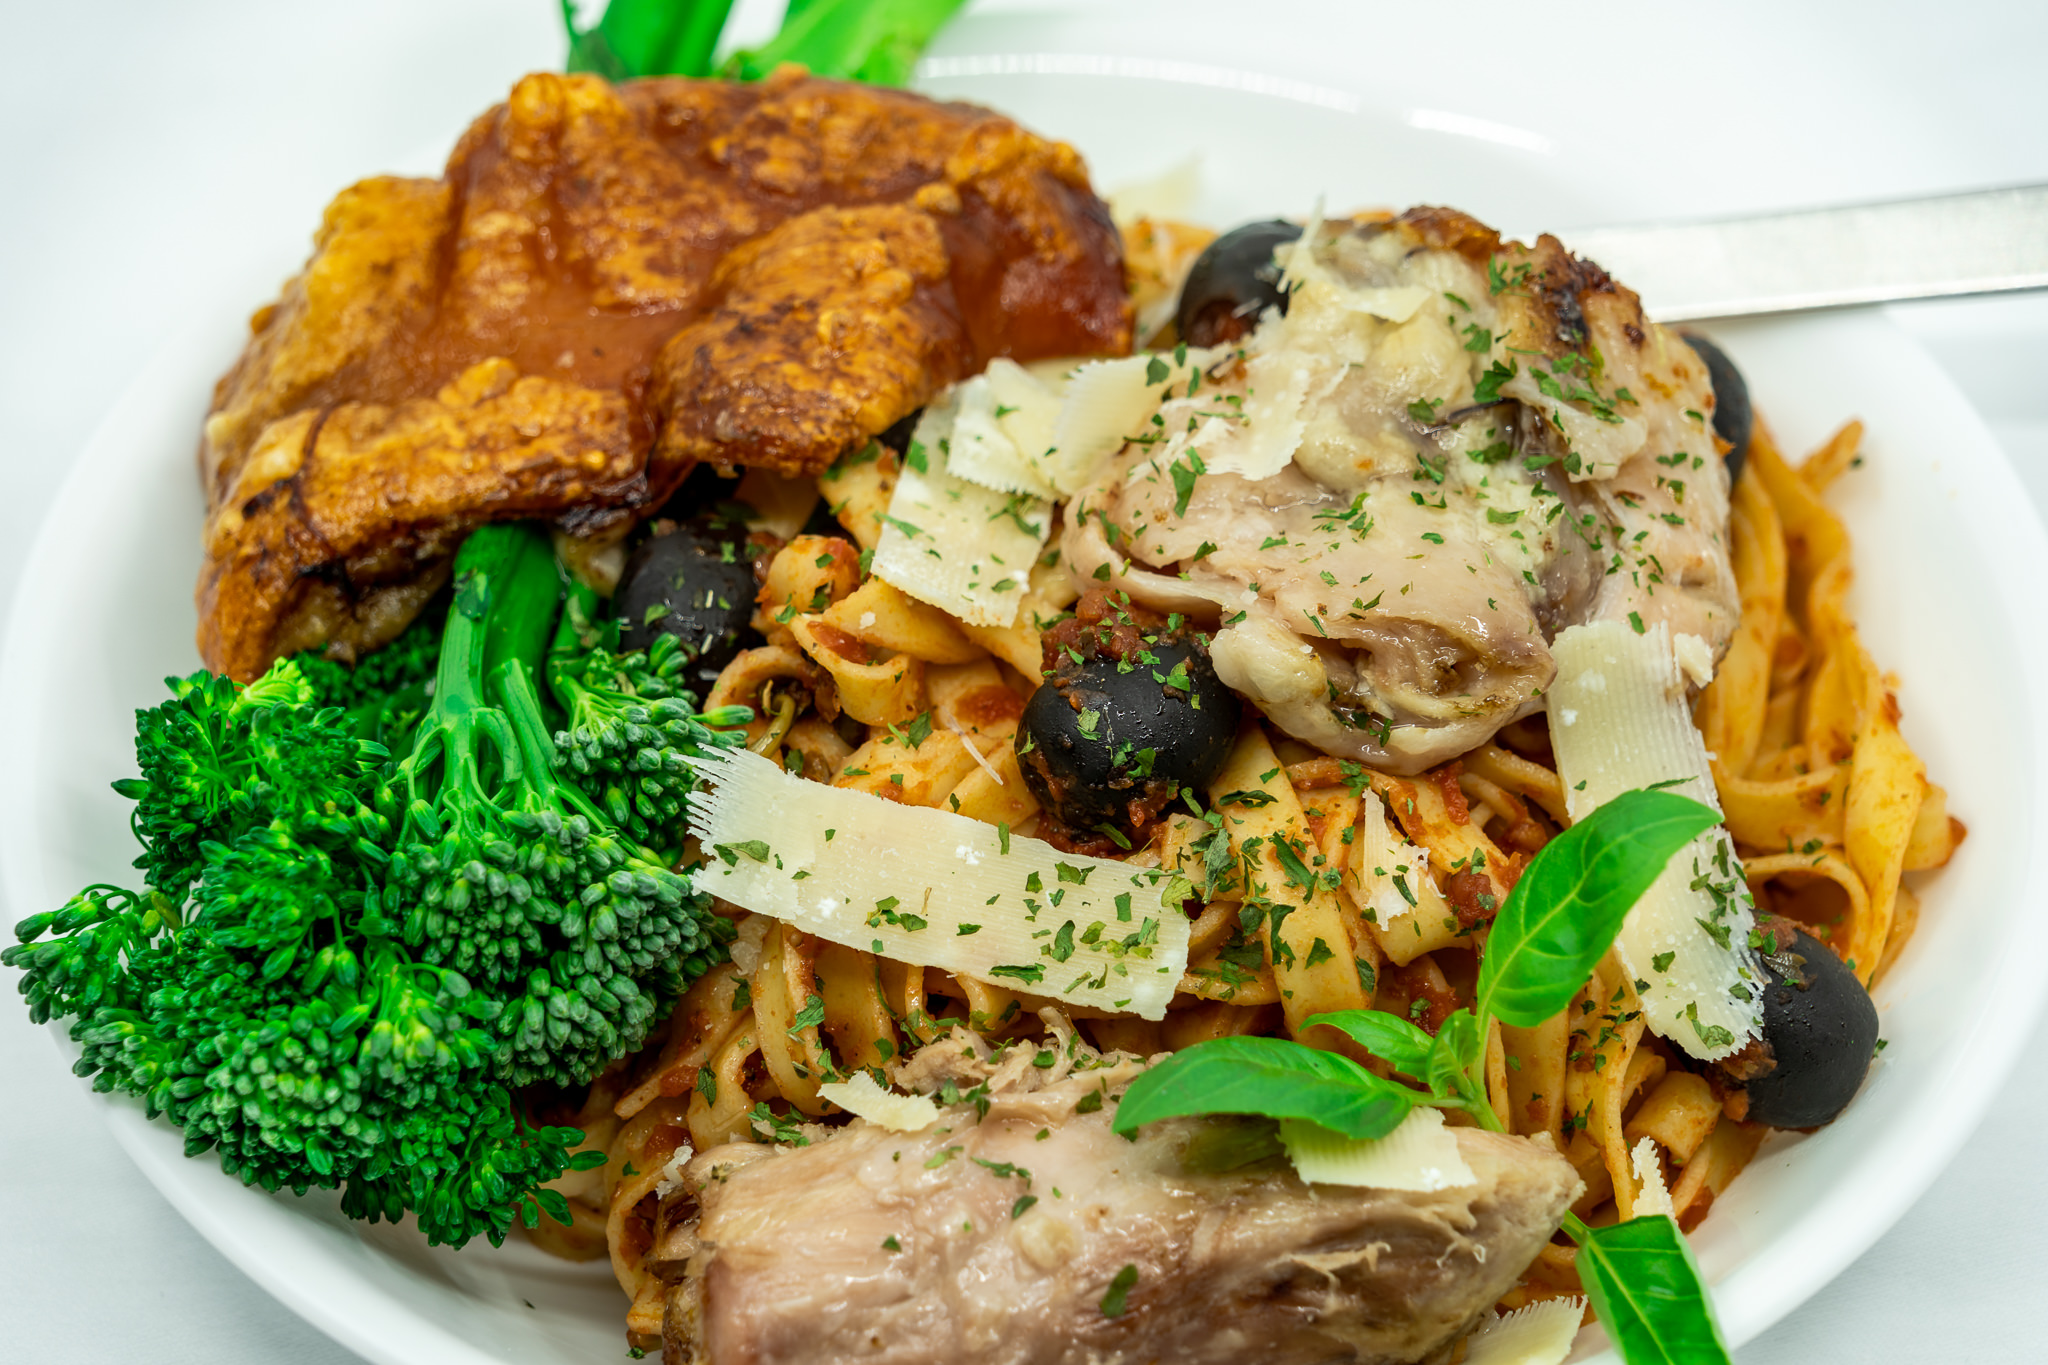 Slow-cooked pork knuckle with fresh egg fettuccine, tomato sauce and steamed broccolini